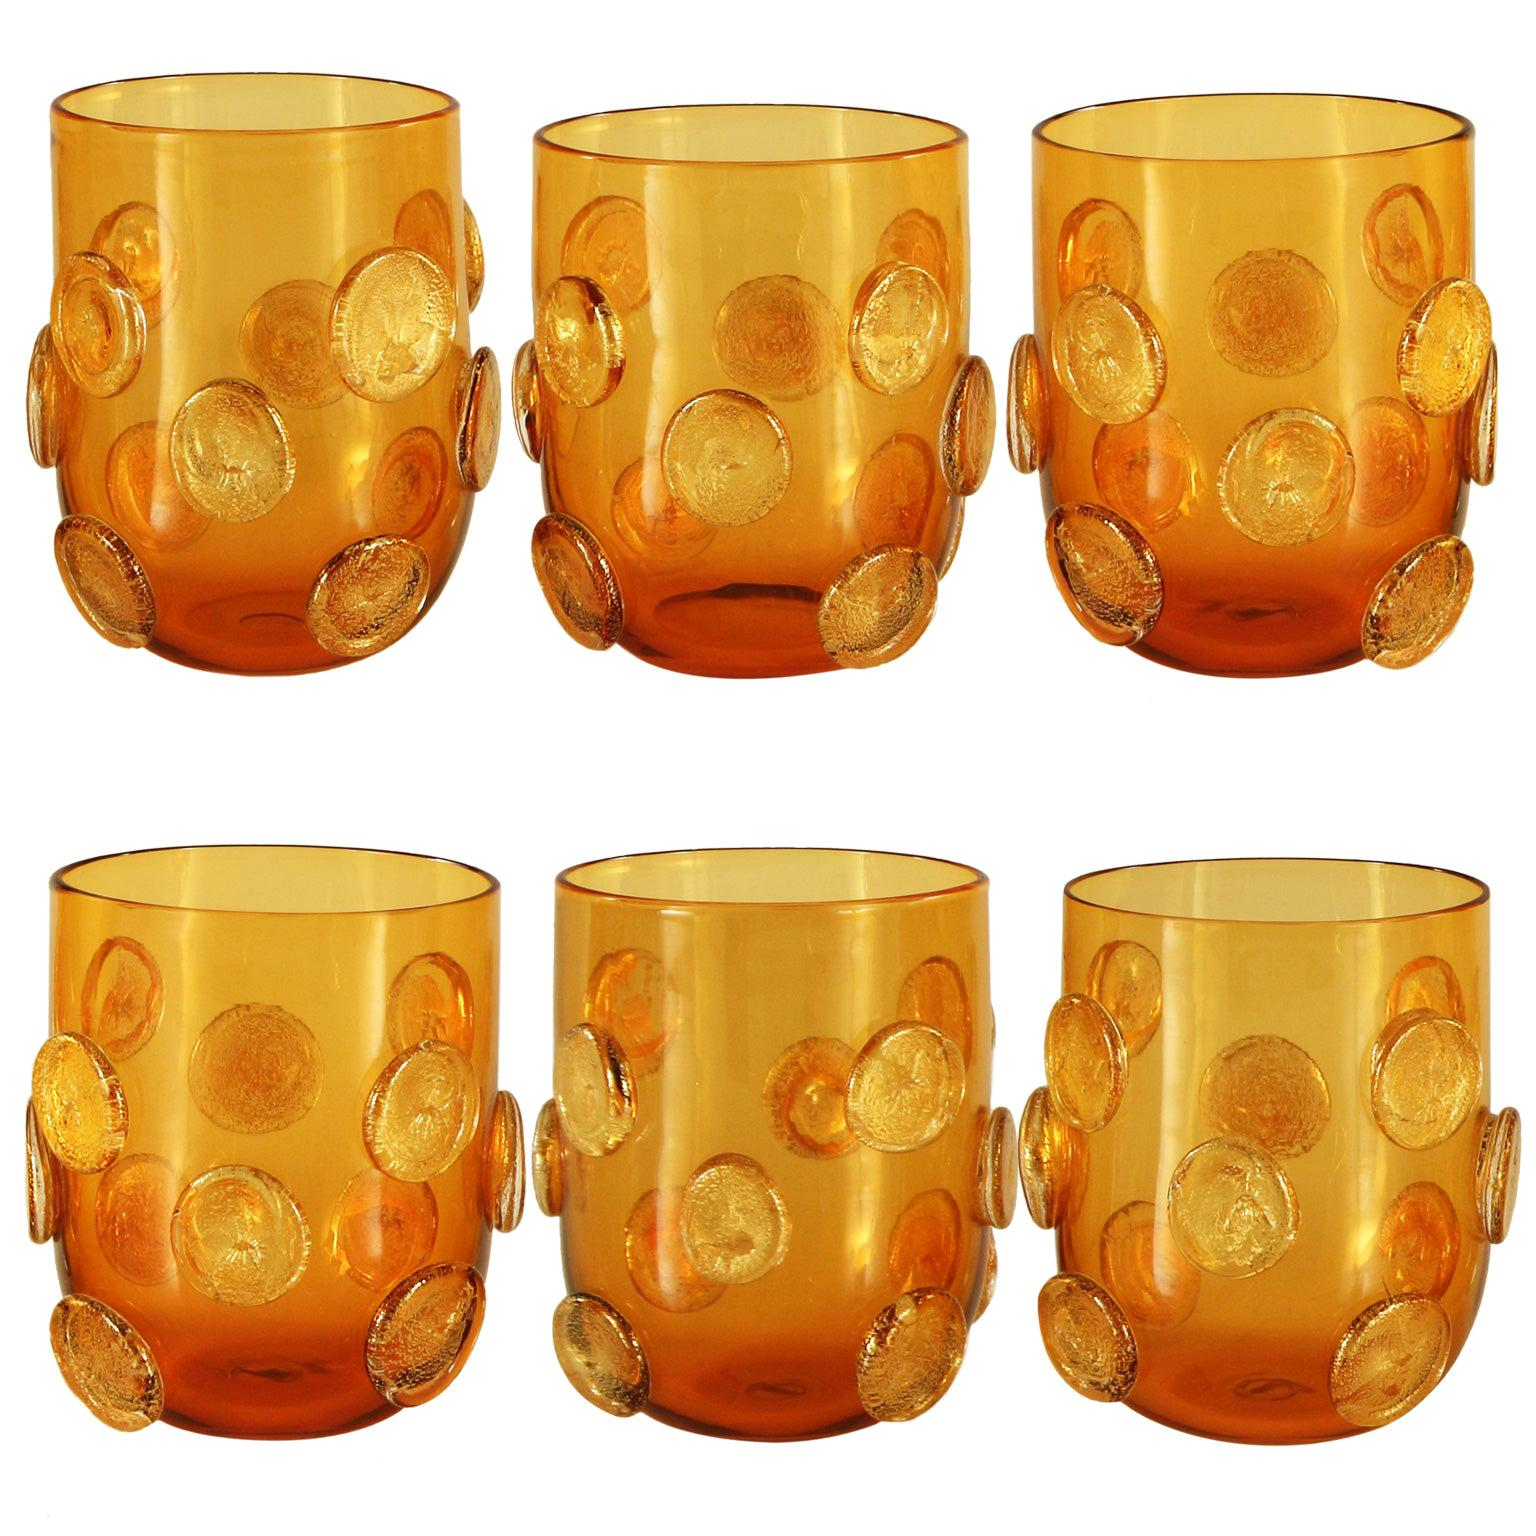 Set of 6 Artistic Handmade Glasses Murano Amber Glass Gold Details by Multiforme